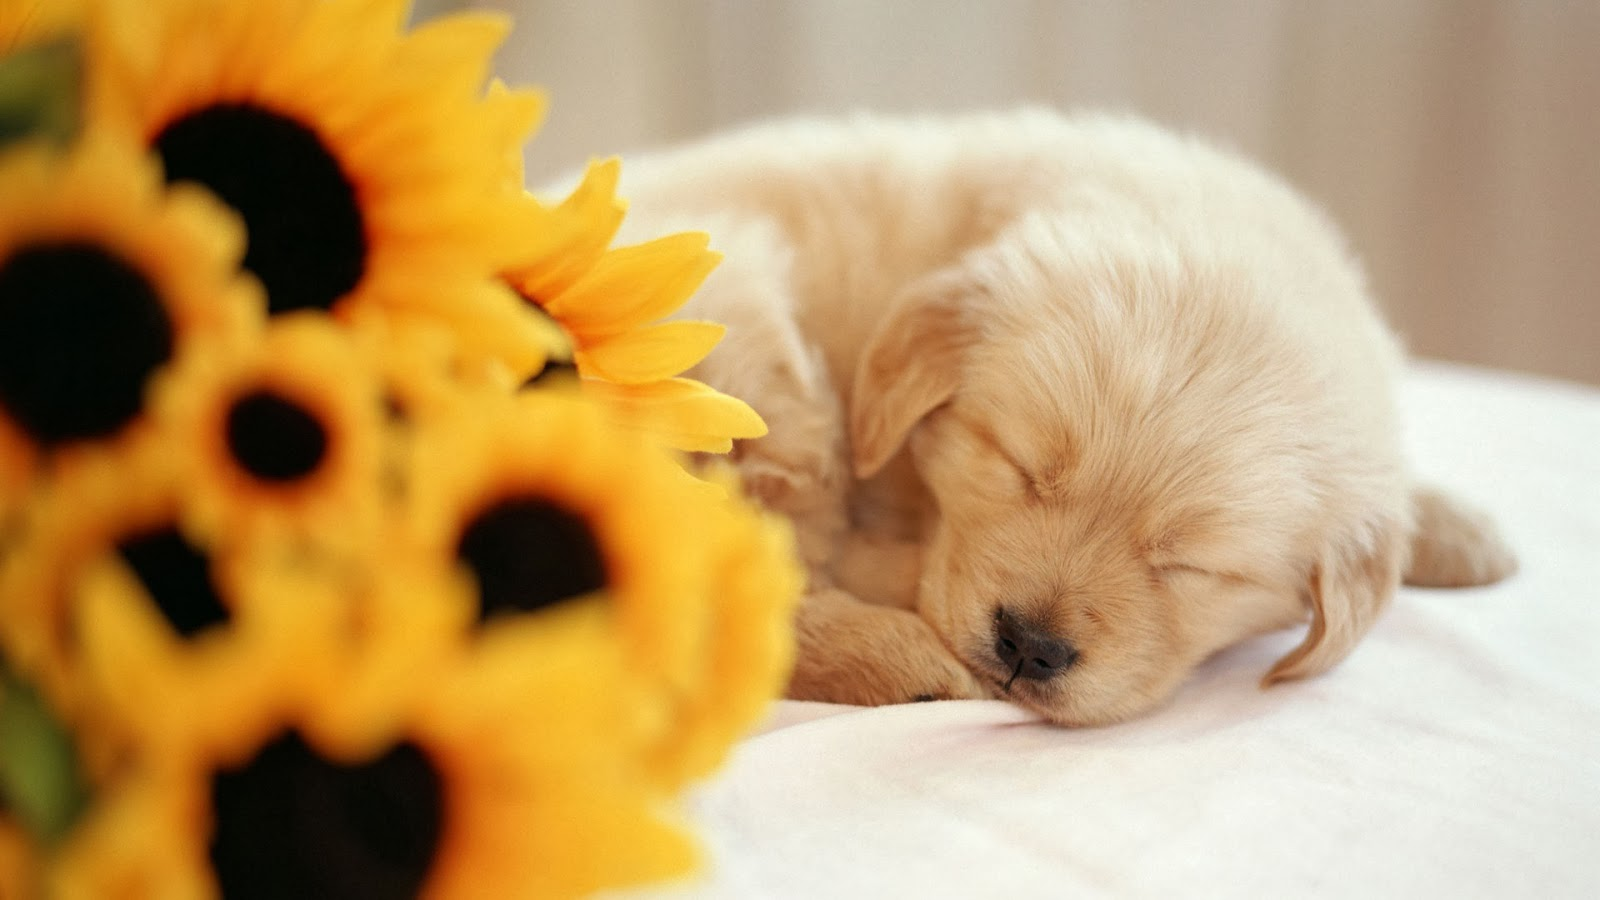 Dogs - HD Wallpapers